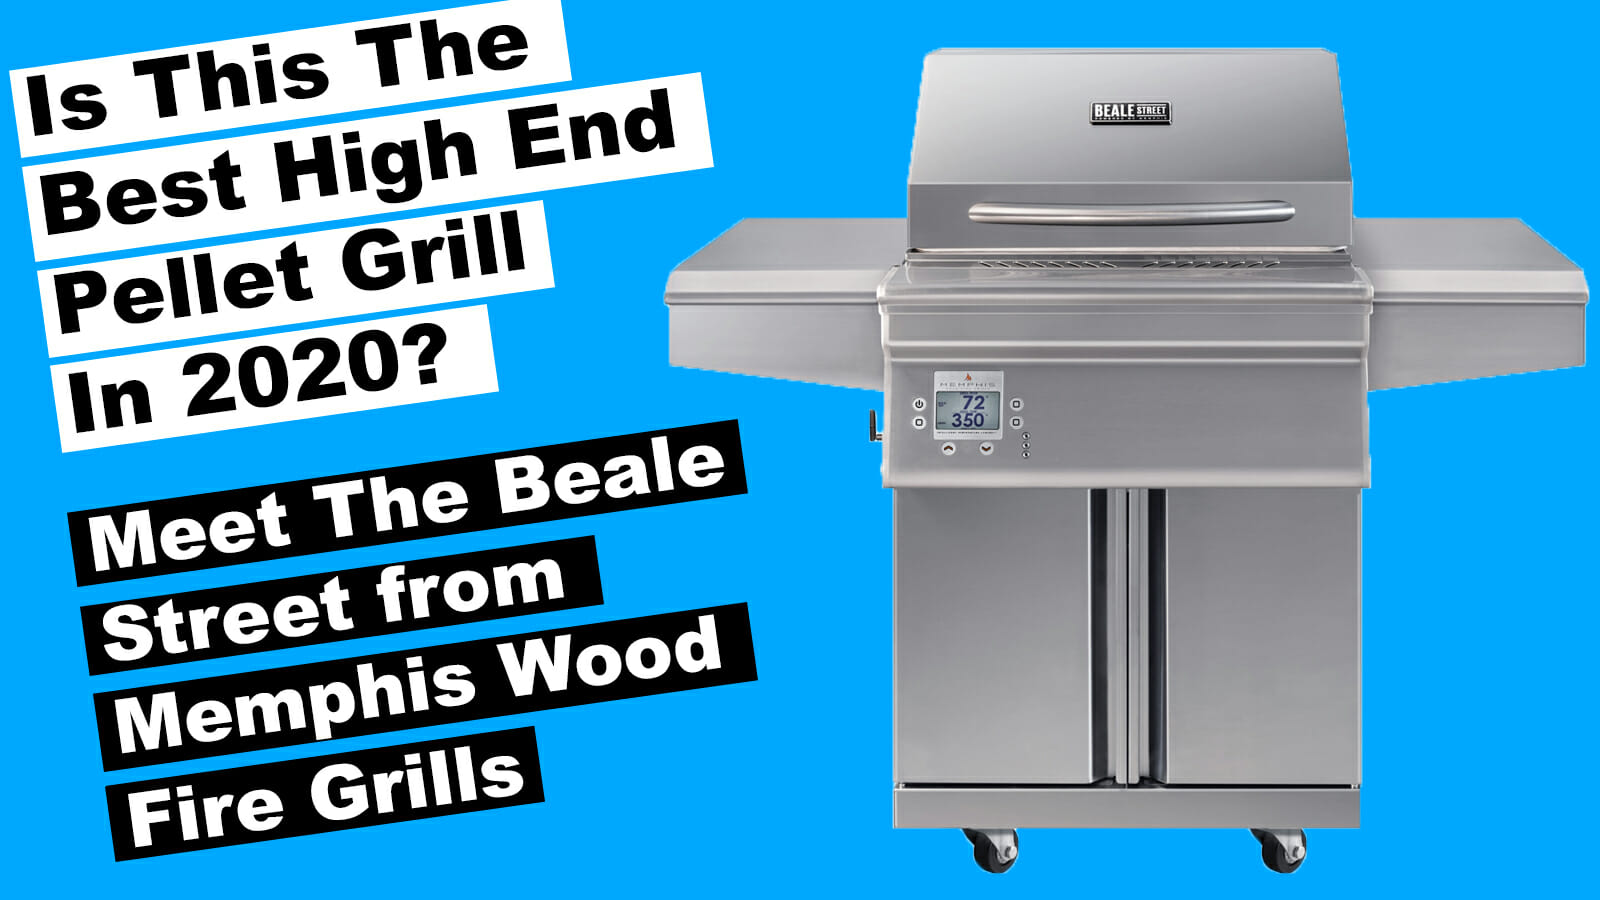 Beale Street by Memphis Wood Fire Grills